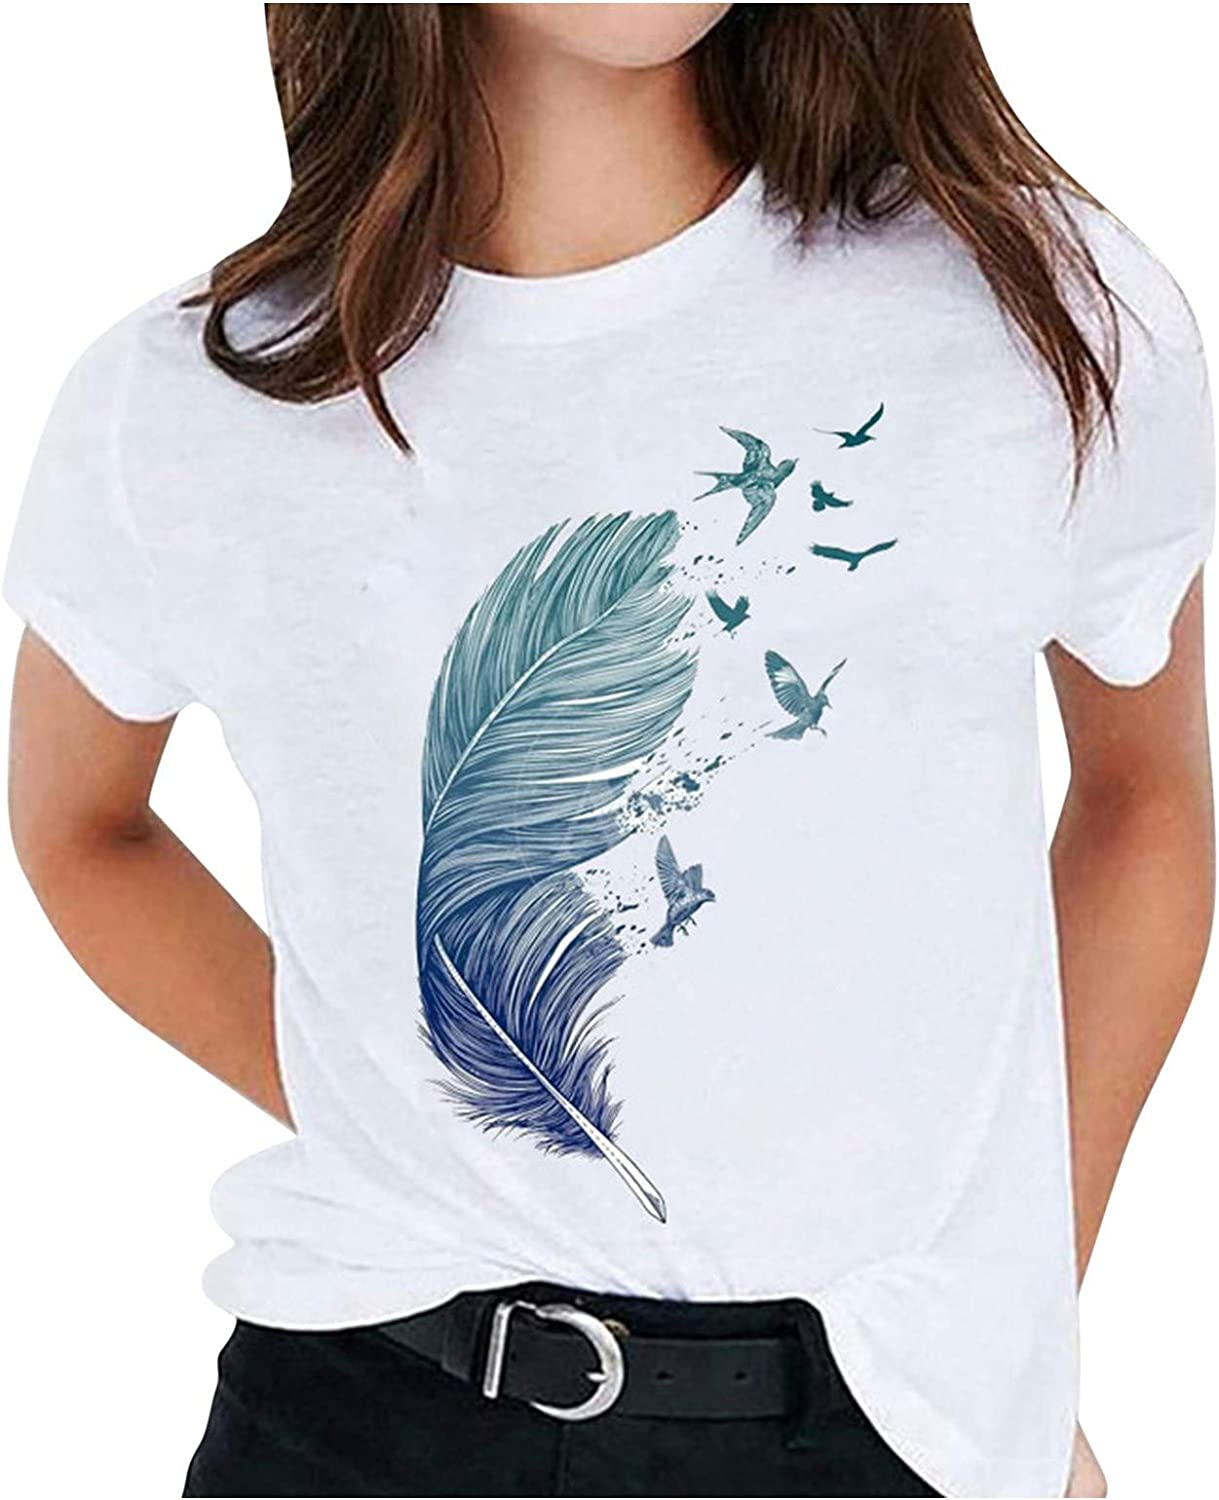 Forwelly Women's Summer Short Sleeve T Shirt Novelty Feather Print Casual O Neck Tee Shirt Basic Top Blouse